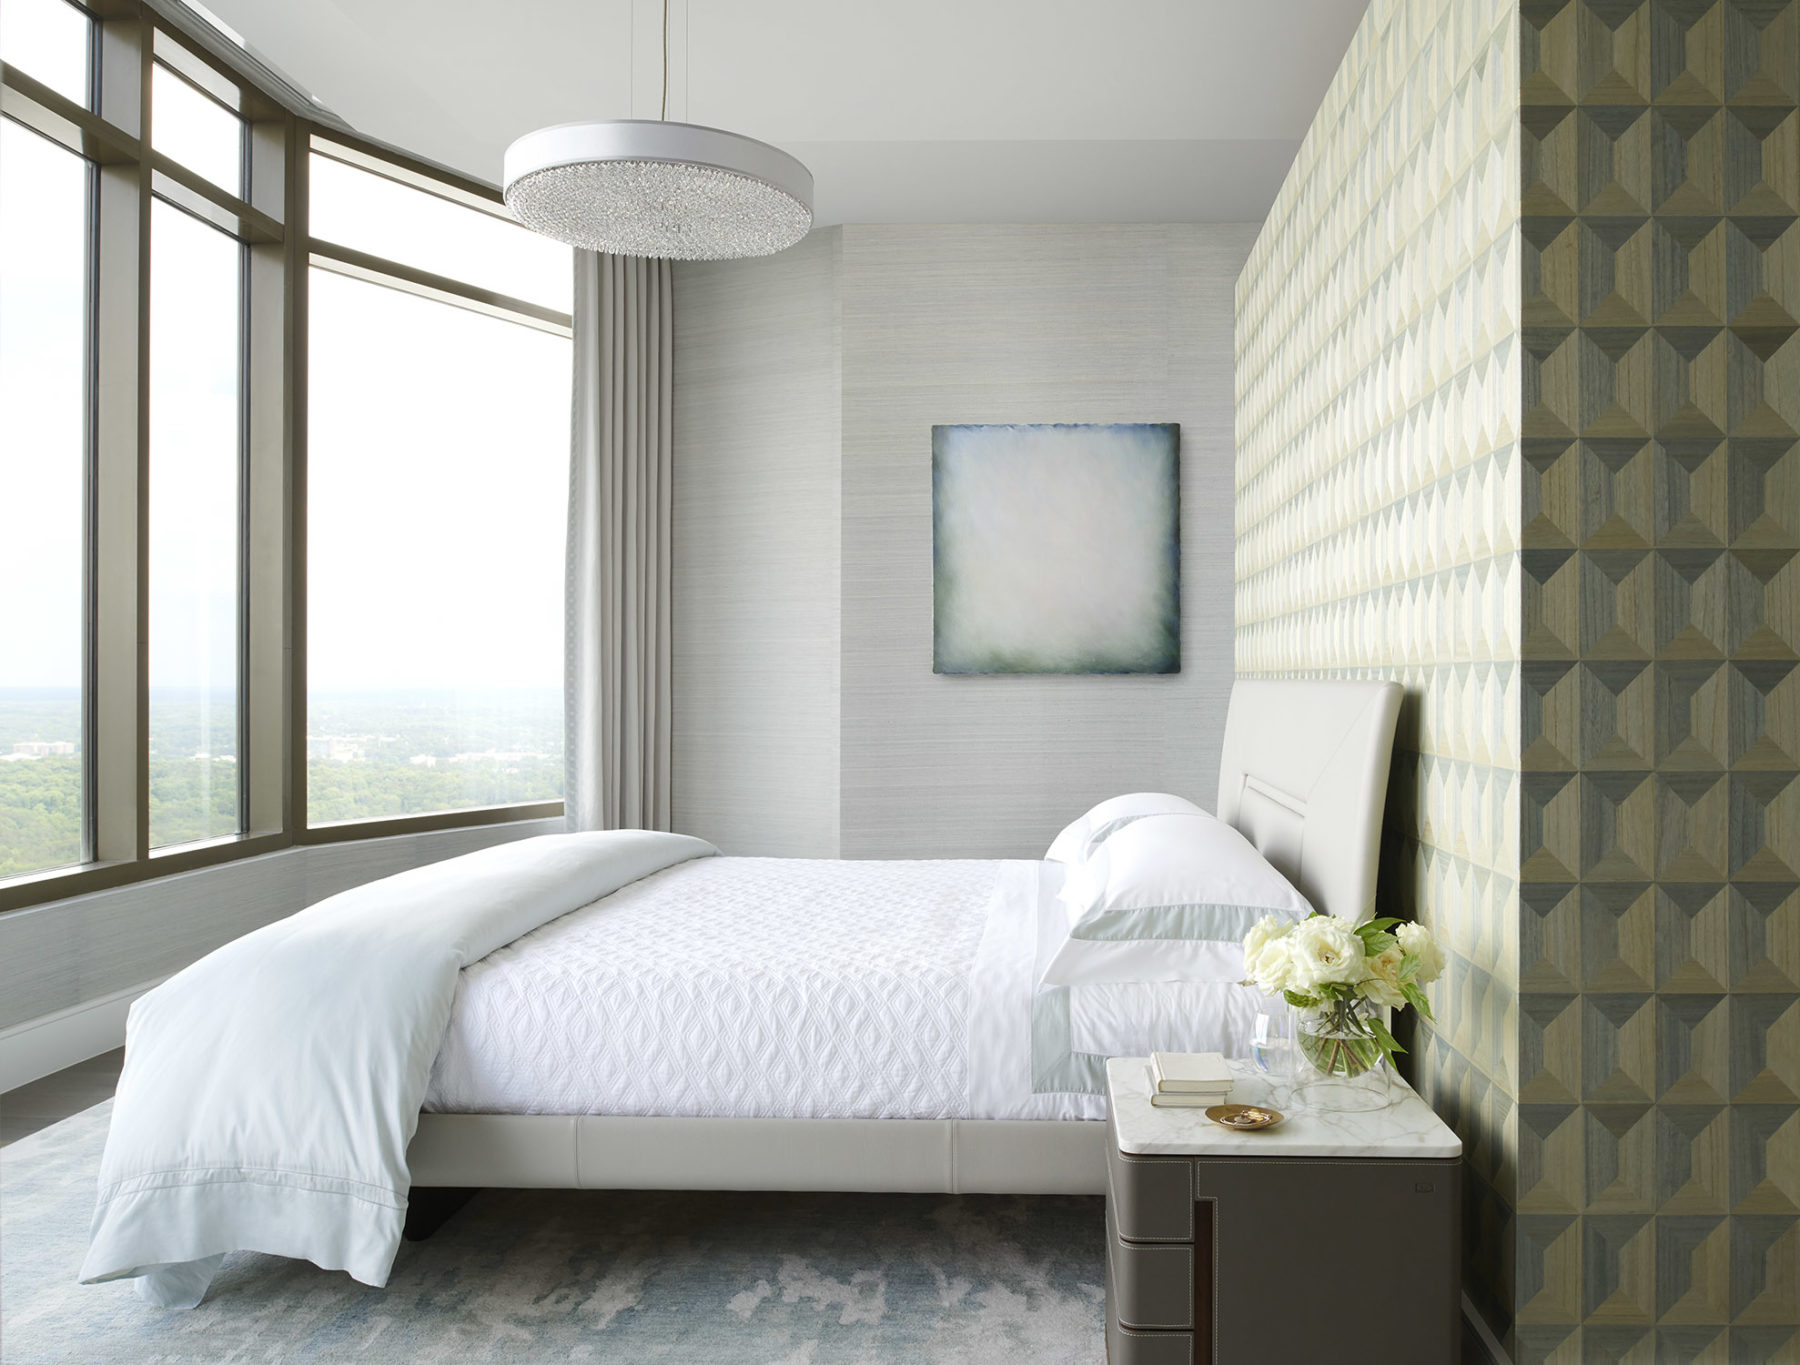 Modern bedroom designed by Harrison Design features soft colors and a distinctive Phillip Jeffries geometric wall pattern.